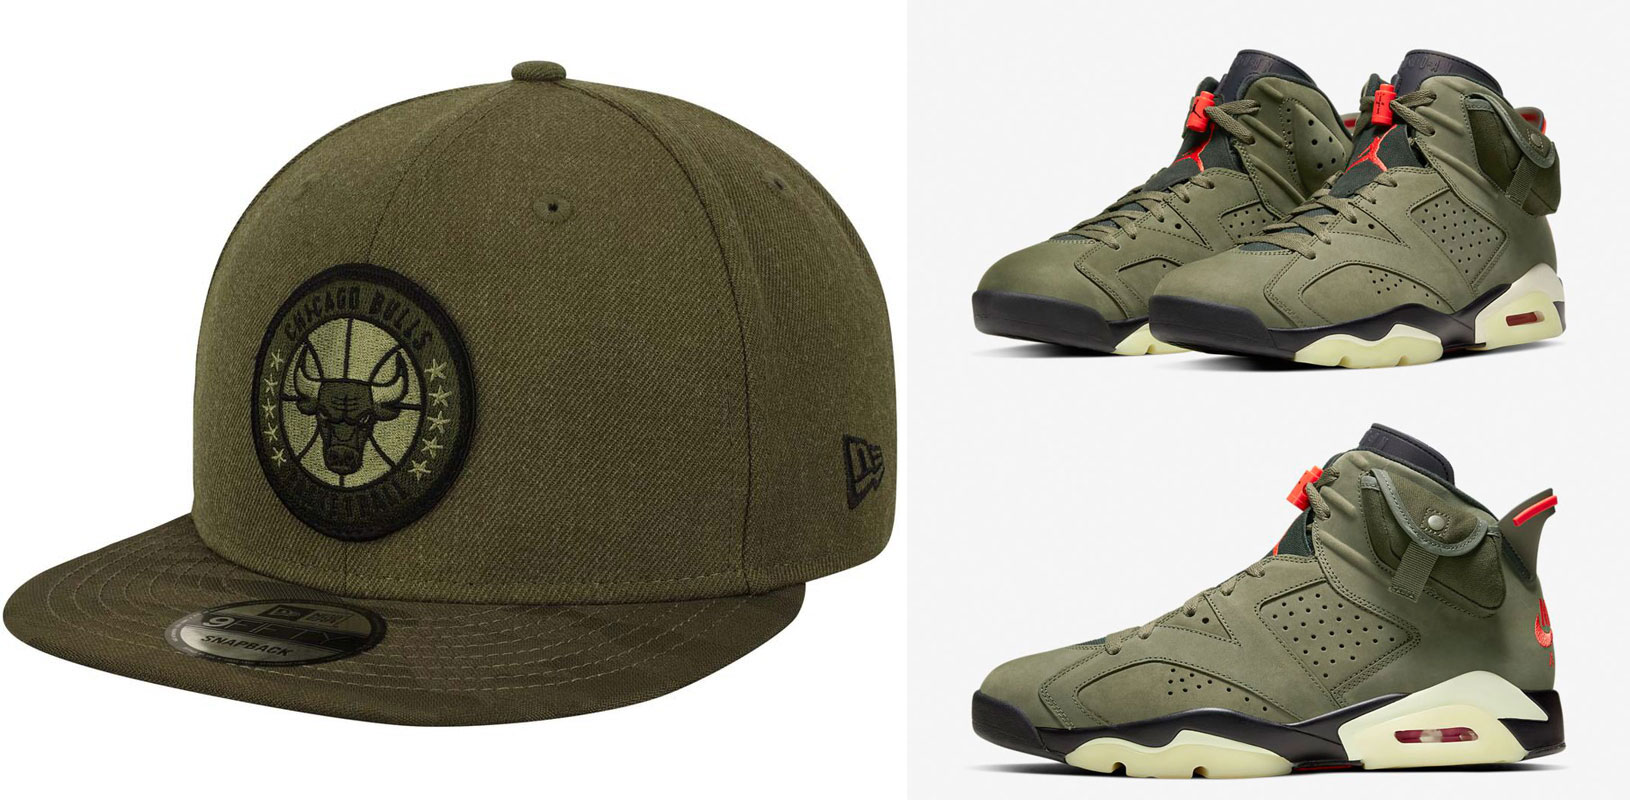 travis-scott-air-jordan-6-olive-bulls-hat-match-3